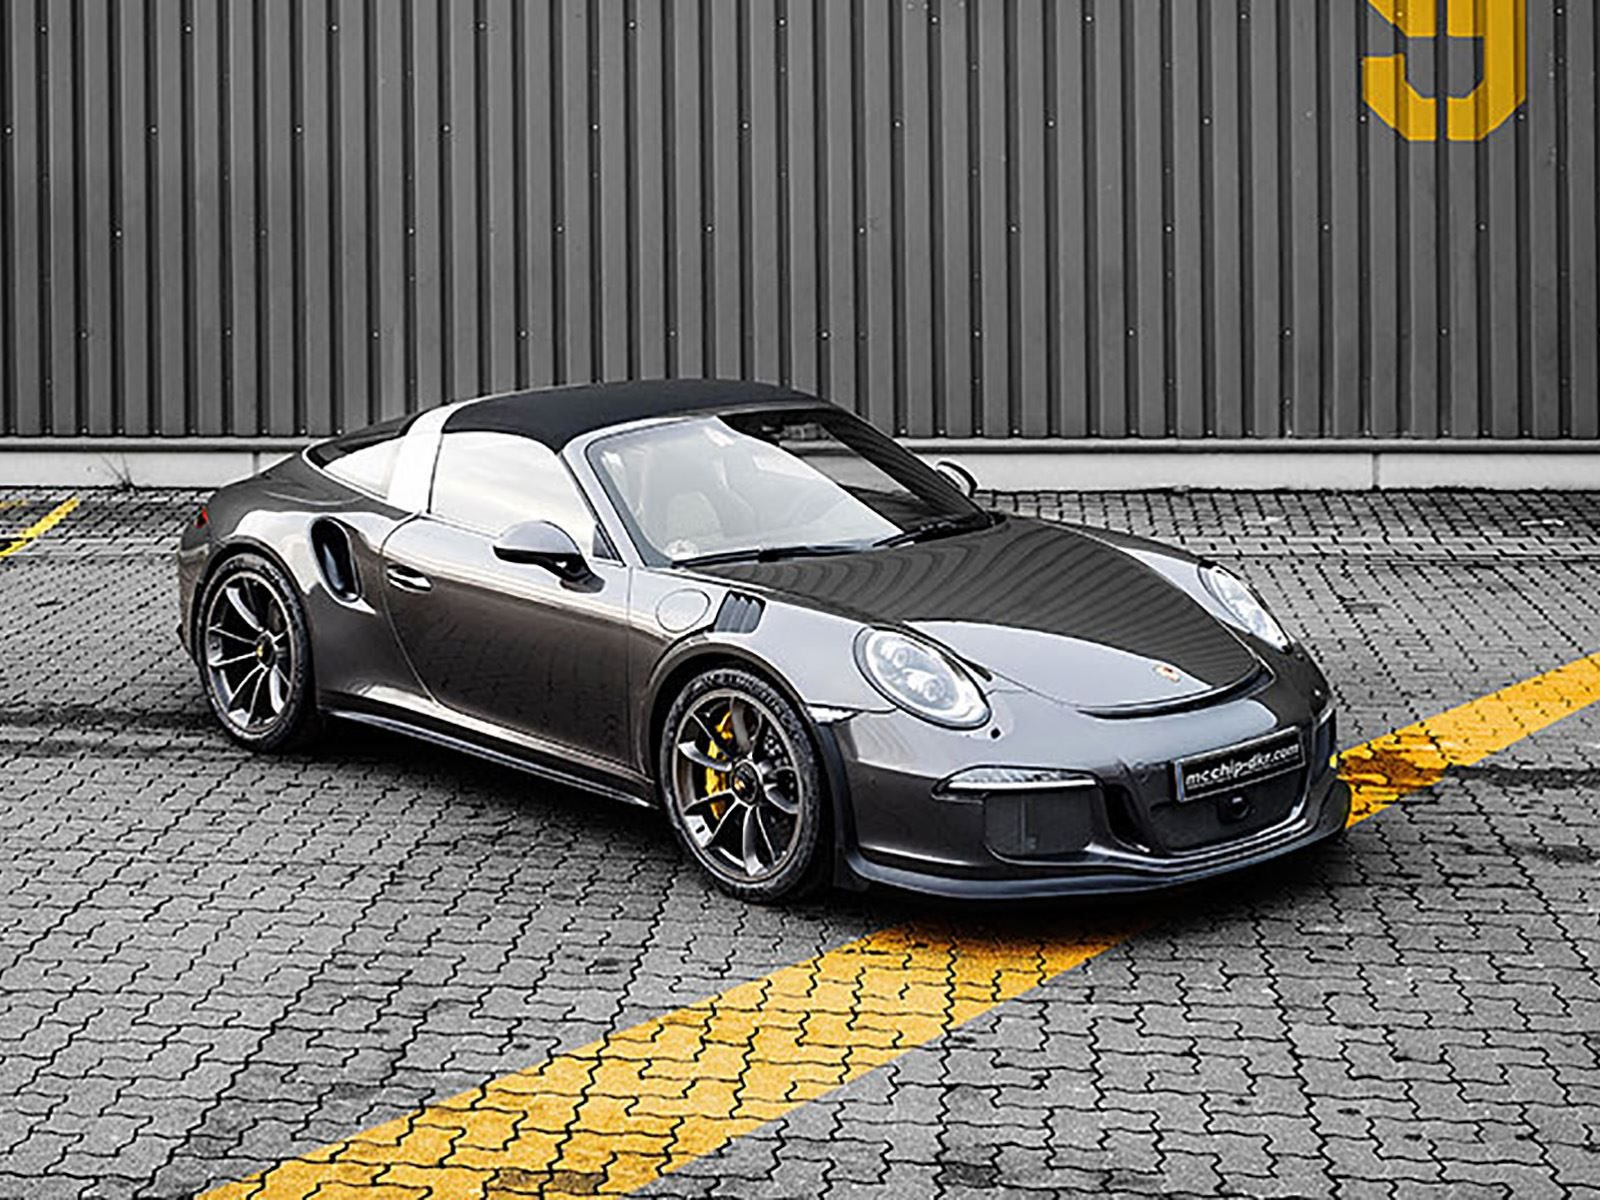 dit is de nieuwe porsche 911 gt3 rs cabriolet. Black Bedroom Furniture Sets. Home Design Ideas